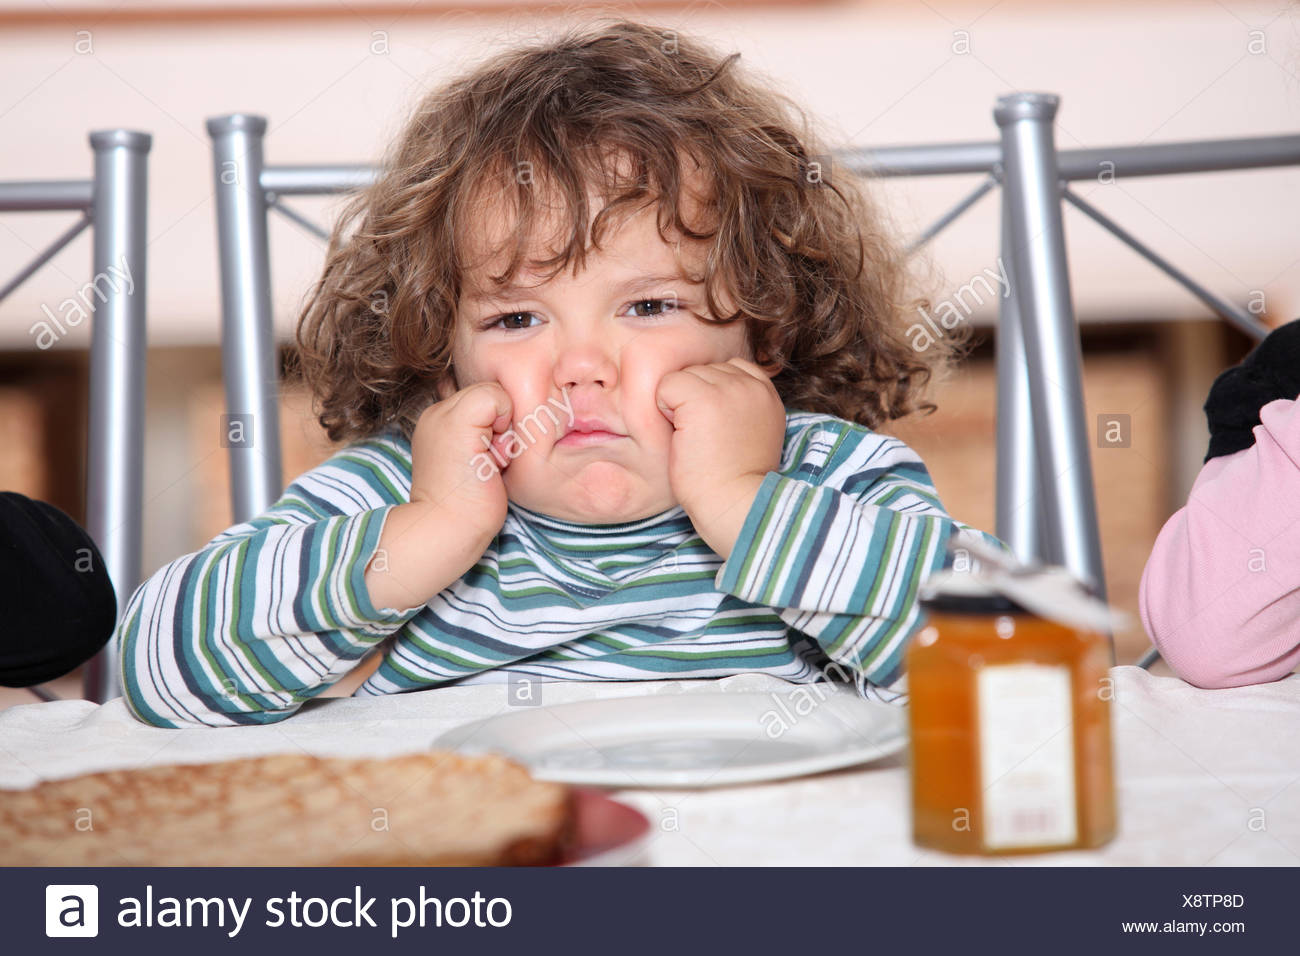 sad mood plate - Stock Image